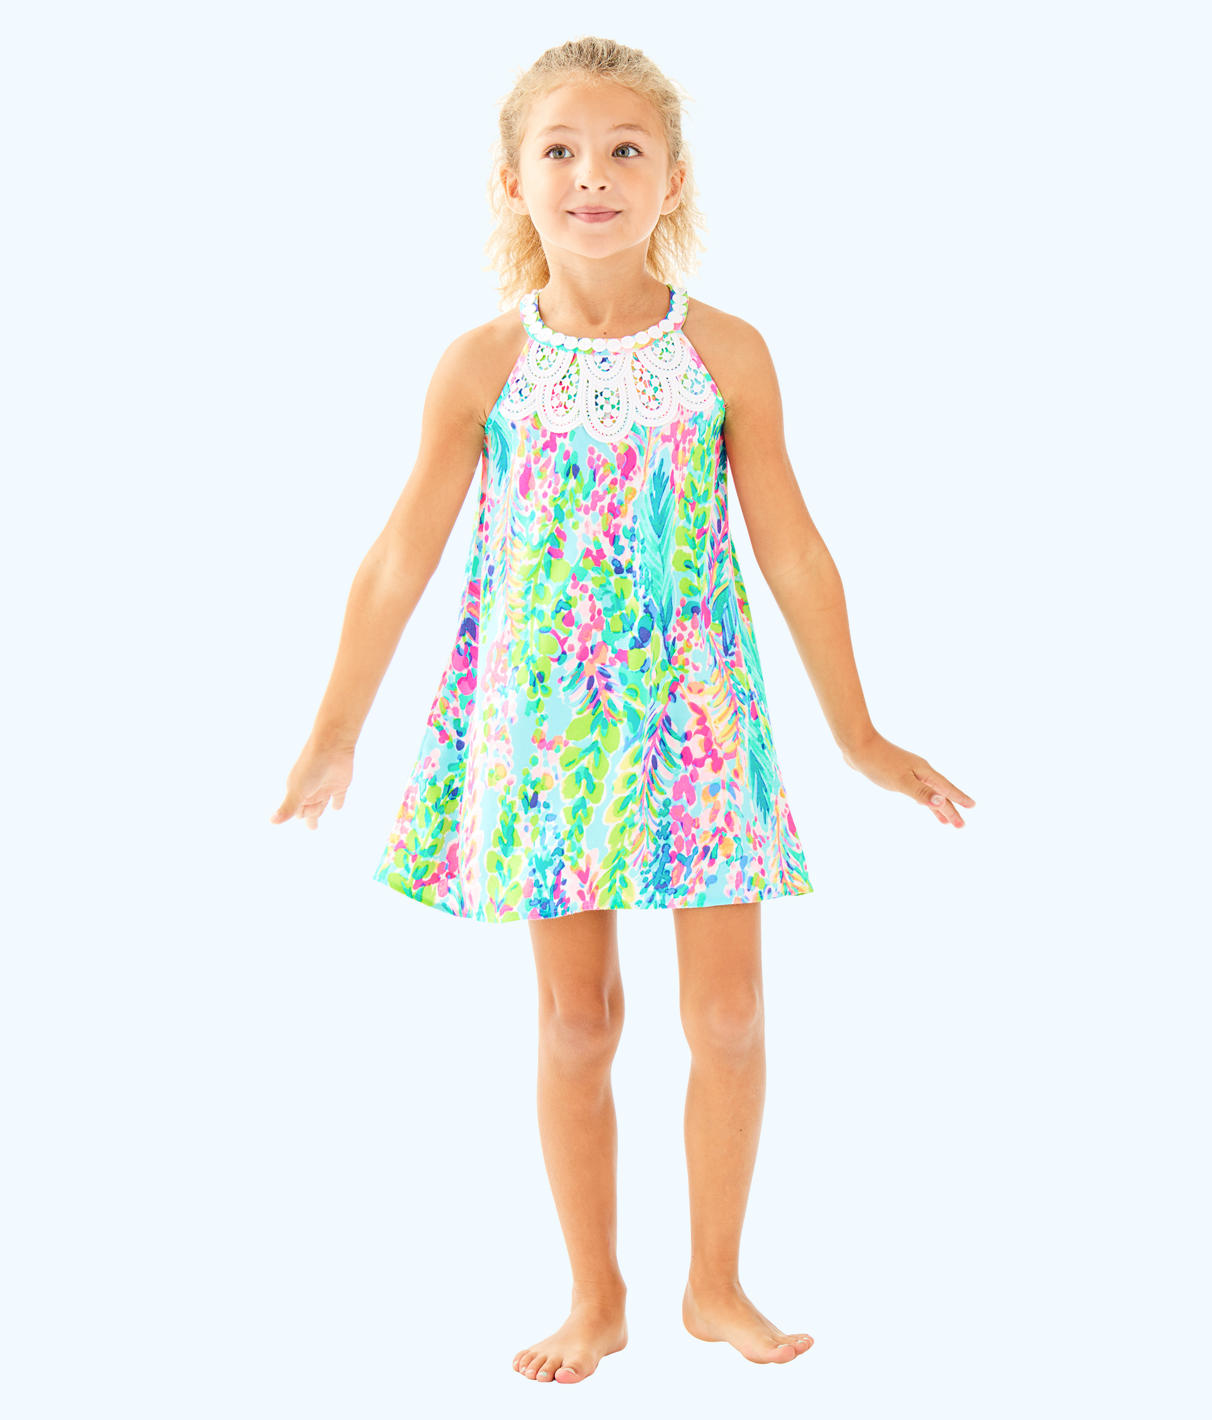 Lilly Pulitzer Lilly Pulitzer Girls Mini Pearl Shift